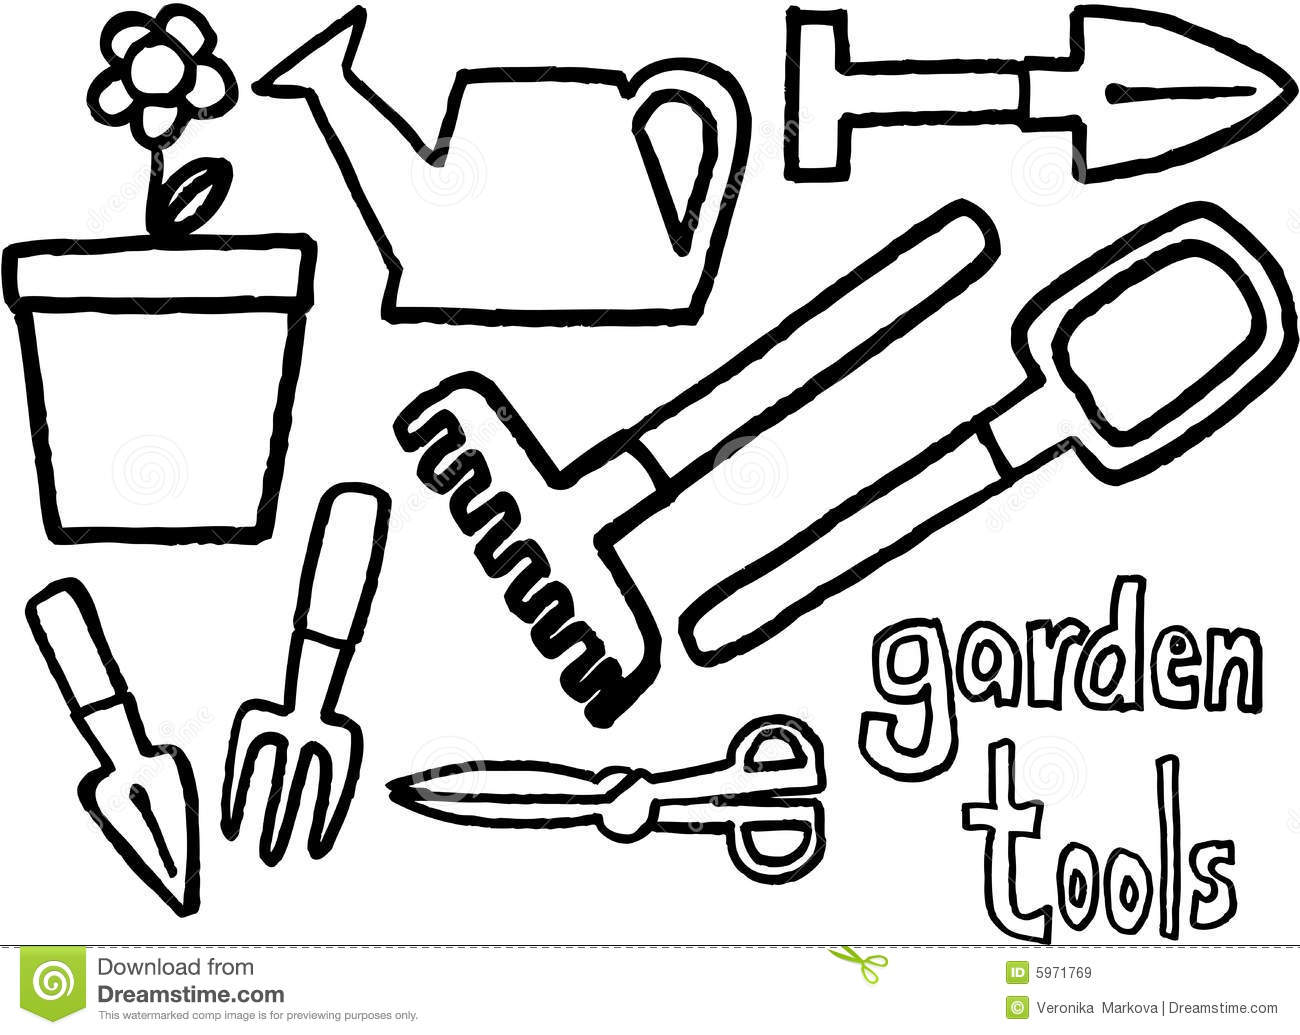 Free printable coloring pages gardens -  Garden Tools Coloring Page Free Printable Coloring Pages Download